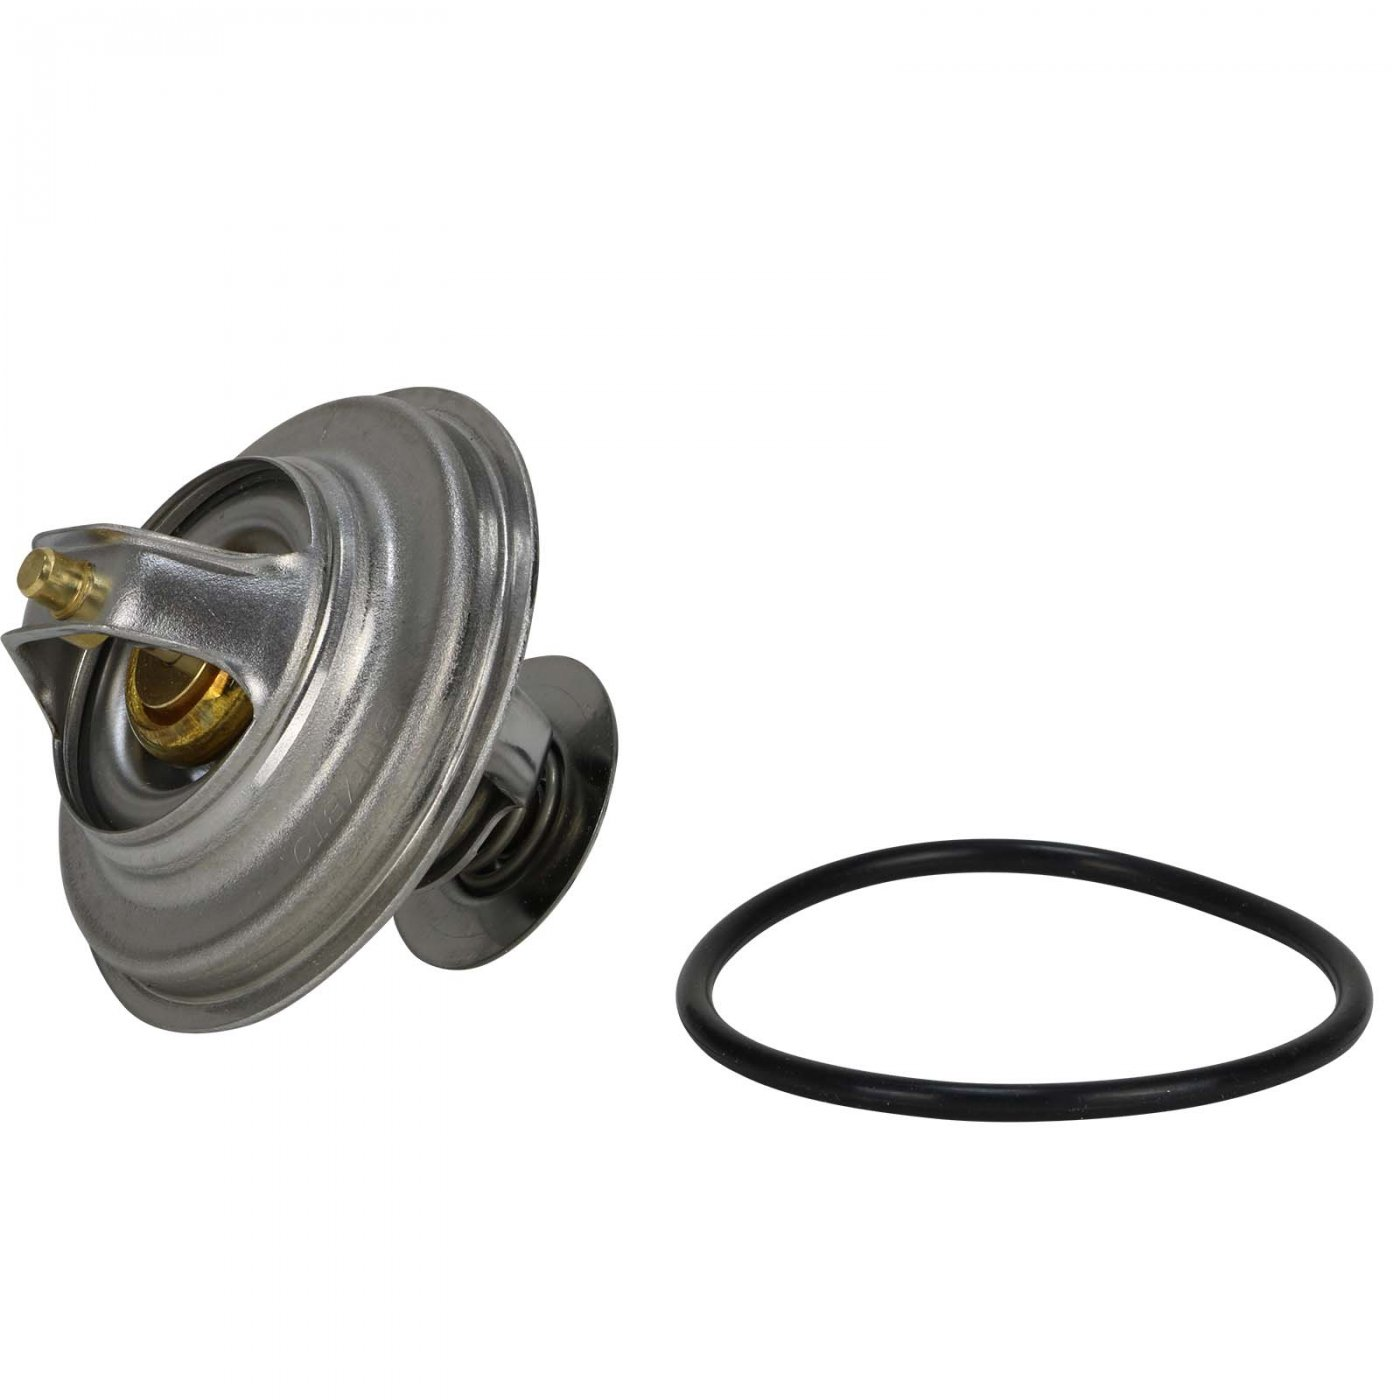 Wiring Diagram For Lennex M30 Thermostat